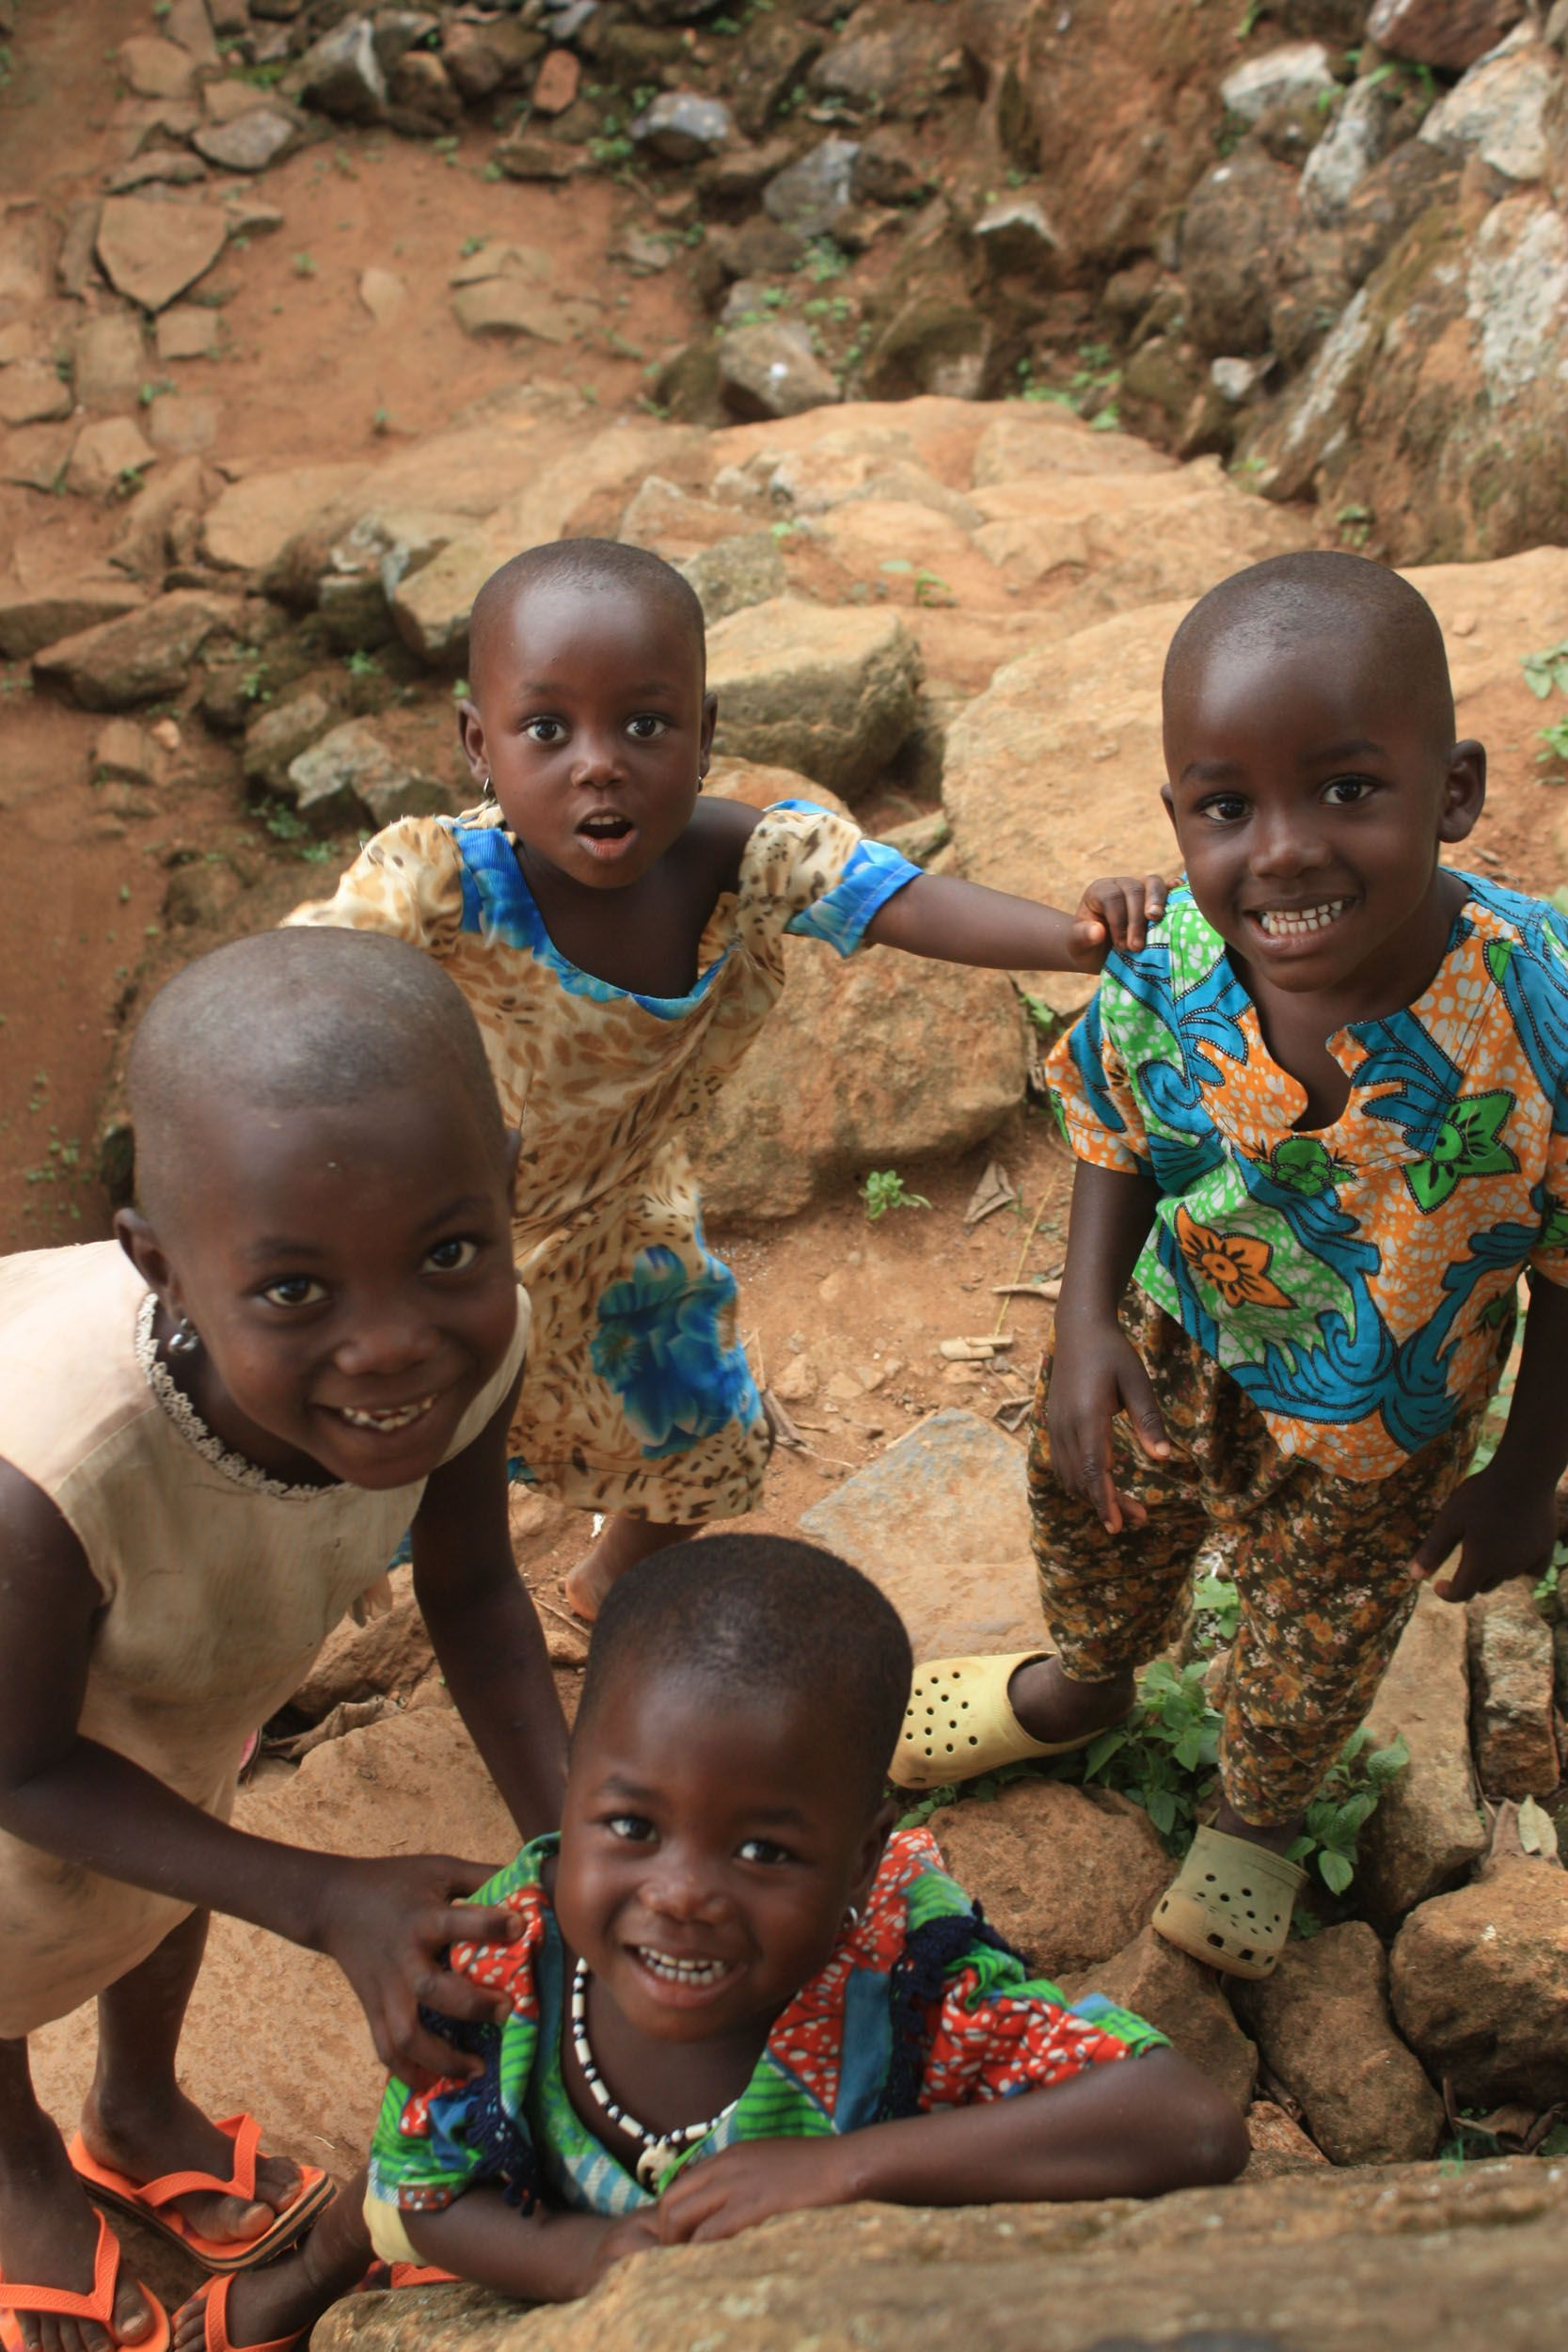 Love more sweet faces like these child smile african children beautiful children